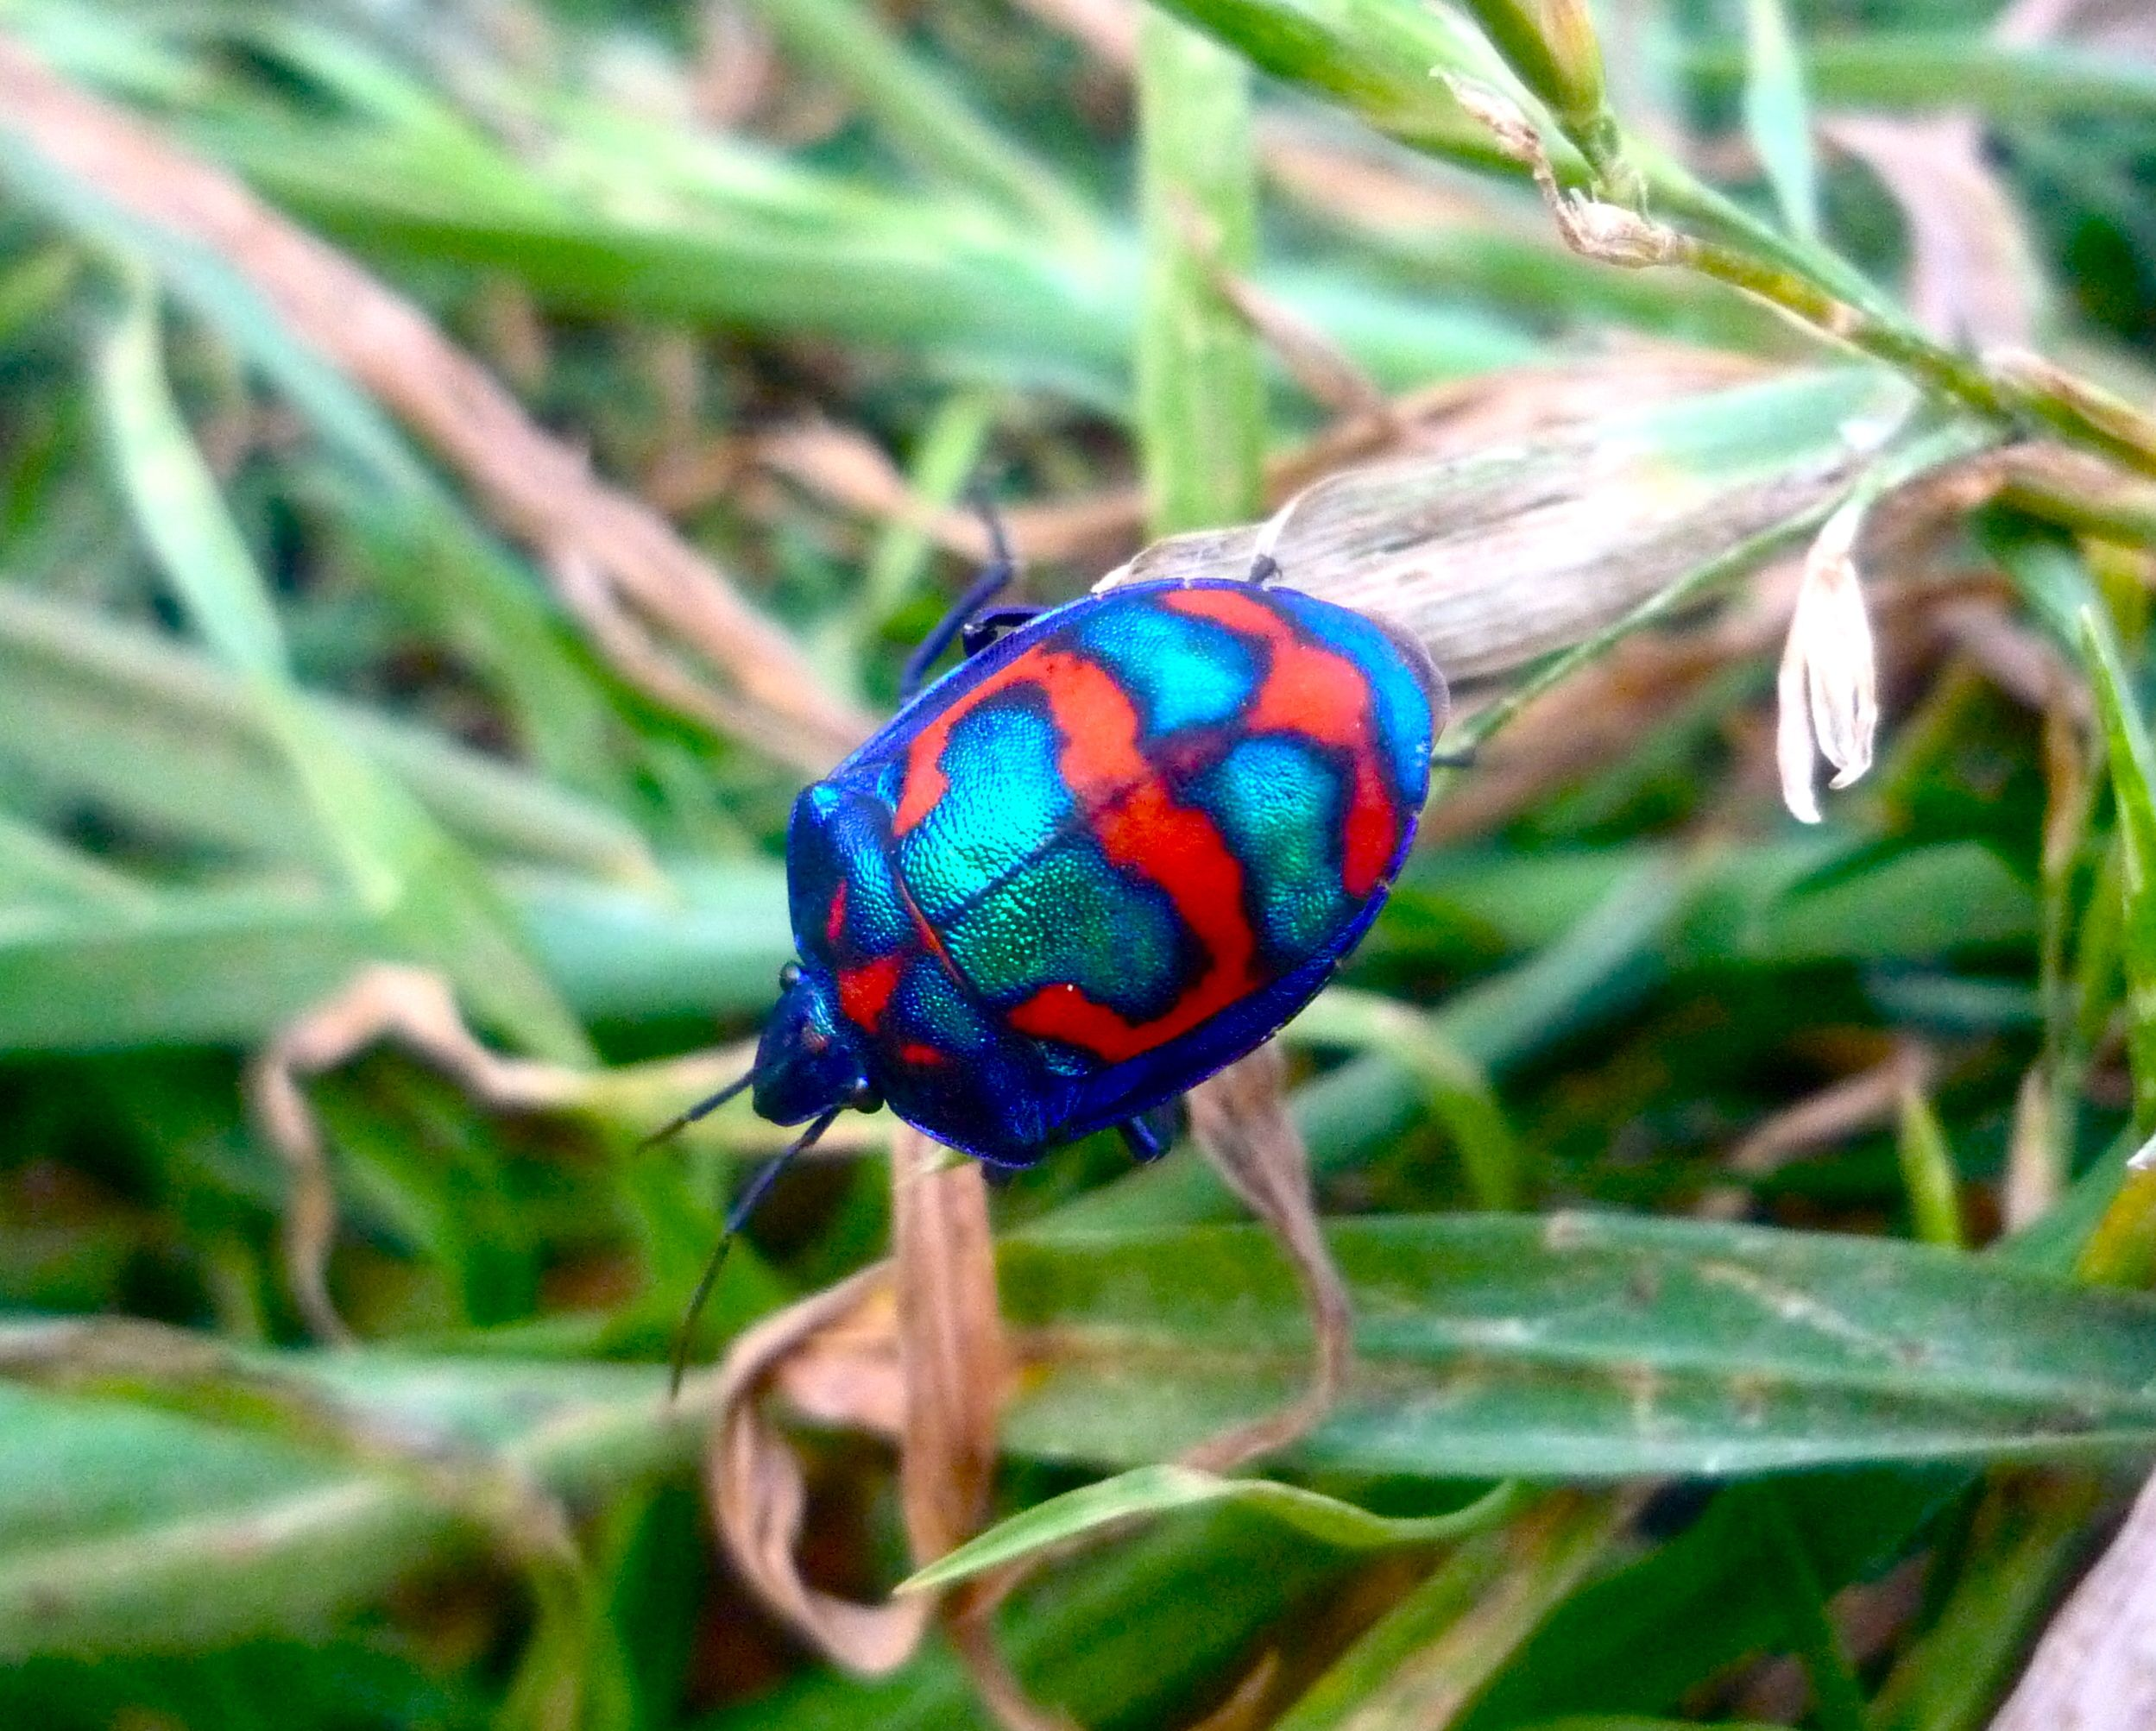 Colourful bug our amazing planet pinterest colourful bug buycottarizona